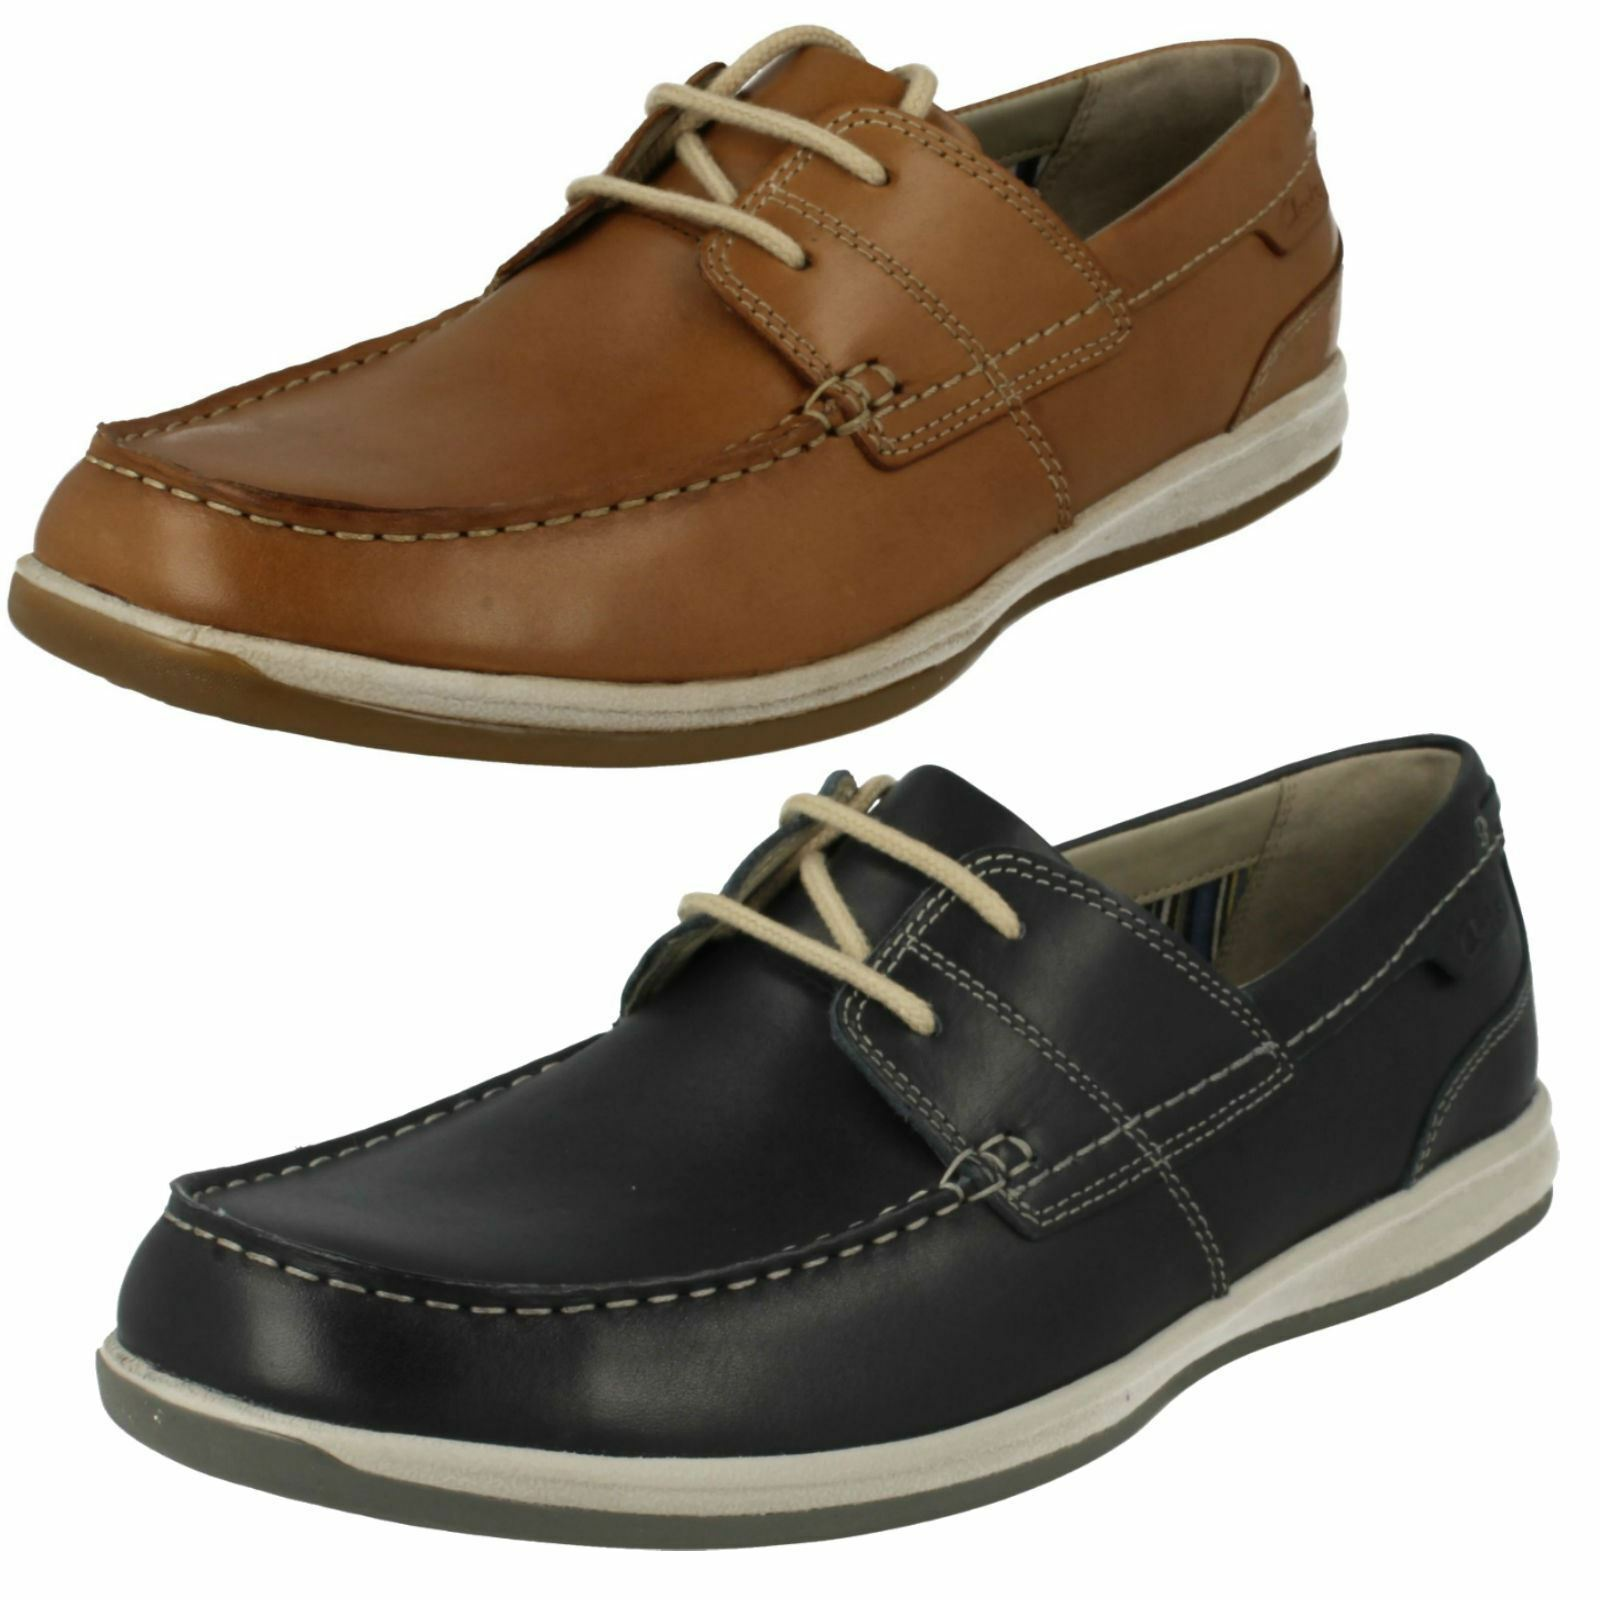 Mens Clarks Moccasin Style Lace Up Leather Casual shoes Fallston Style